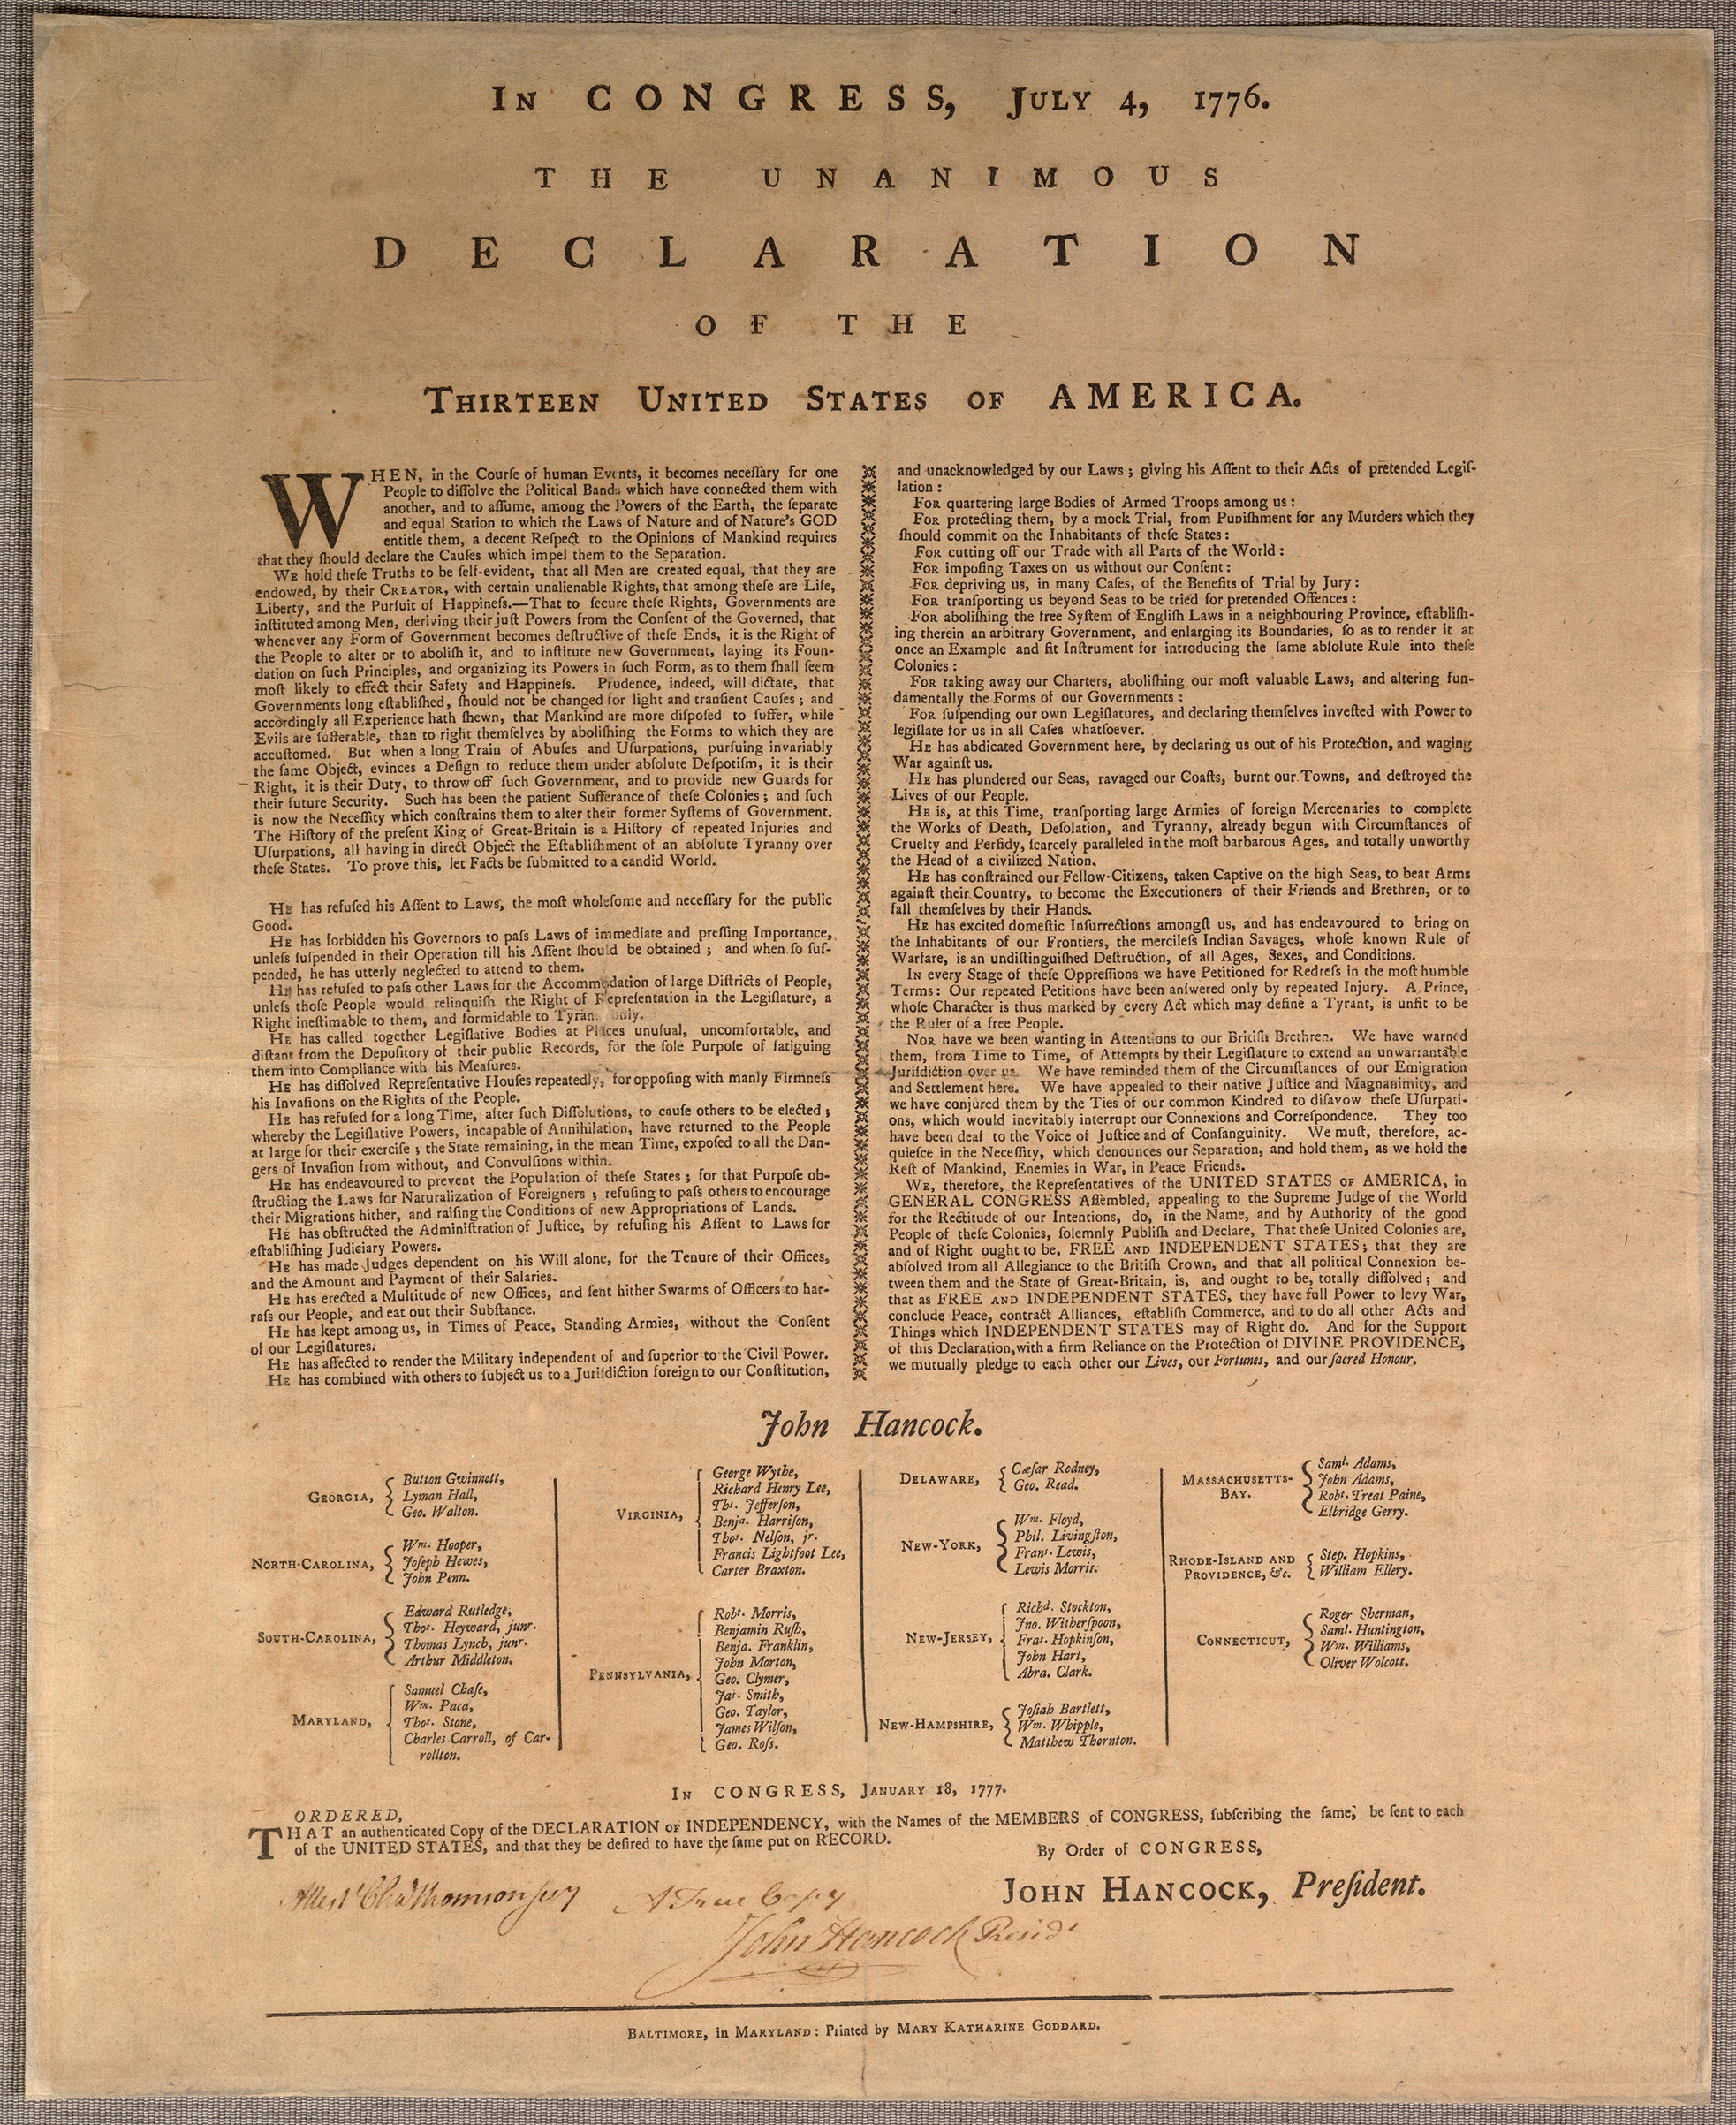 The copy of the Declaration of Independence, printed for preservation purposes in Jan. 1777 by Baltimore postmaster and newspaper publisher Mary Katherine Goddard.